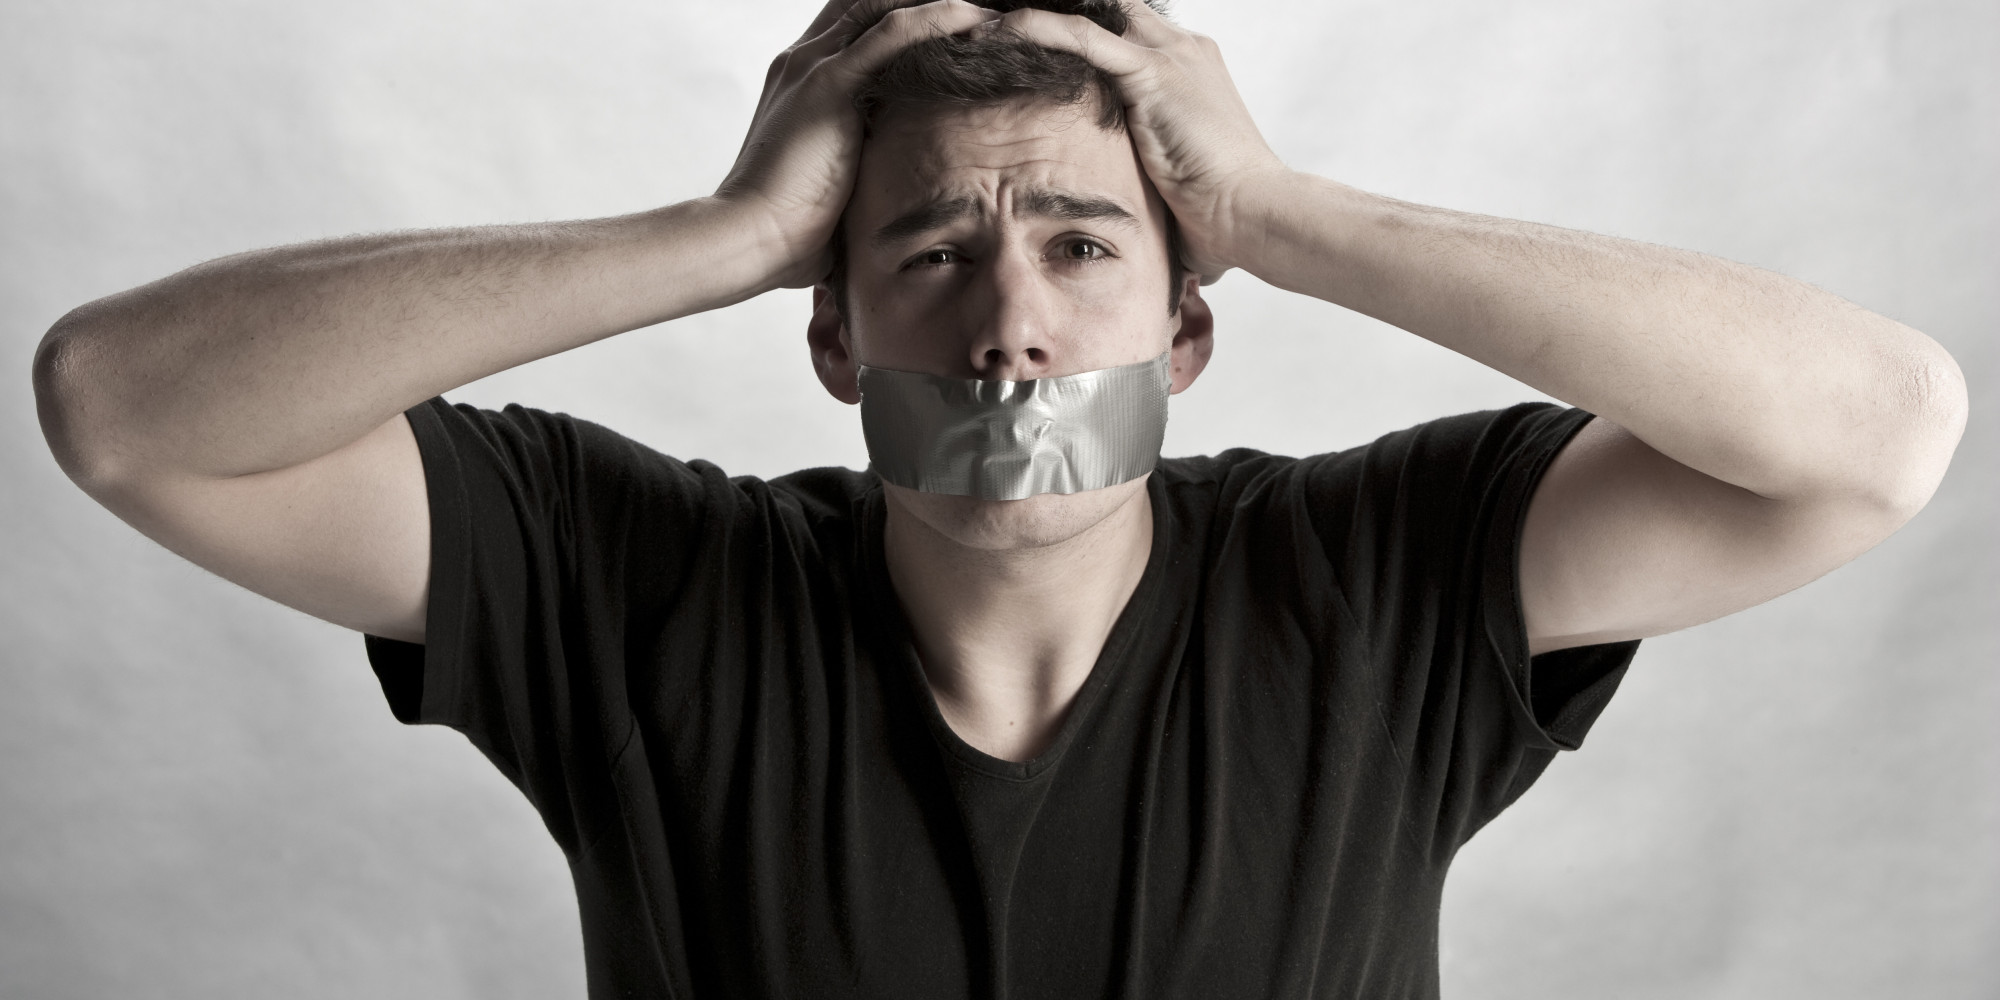 freedom of speech in college campuses essay Here i want to discuss a specific idea for promoting a so called right wing idea –  protection of free speech on college campuses from violence.